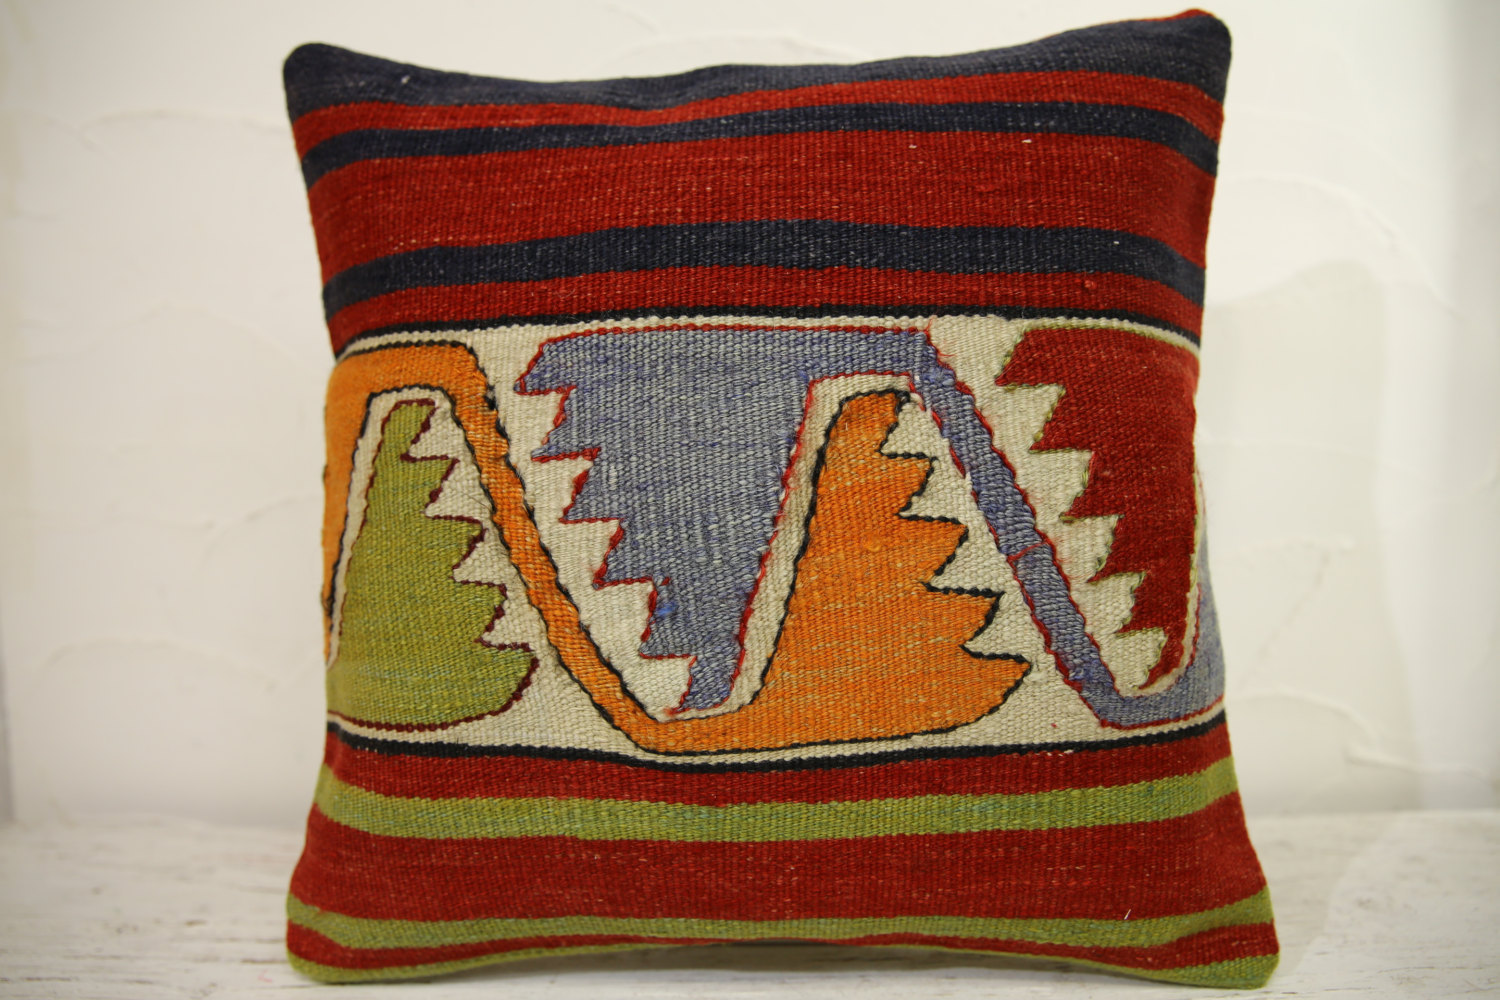 Kilim Pillows | 16x16 | Turkish pillows | 1243 | Accent Pillow,Decorative Pillow